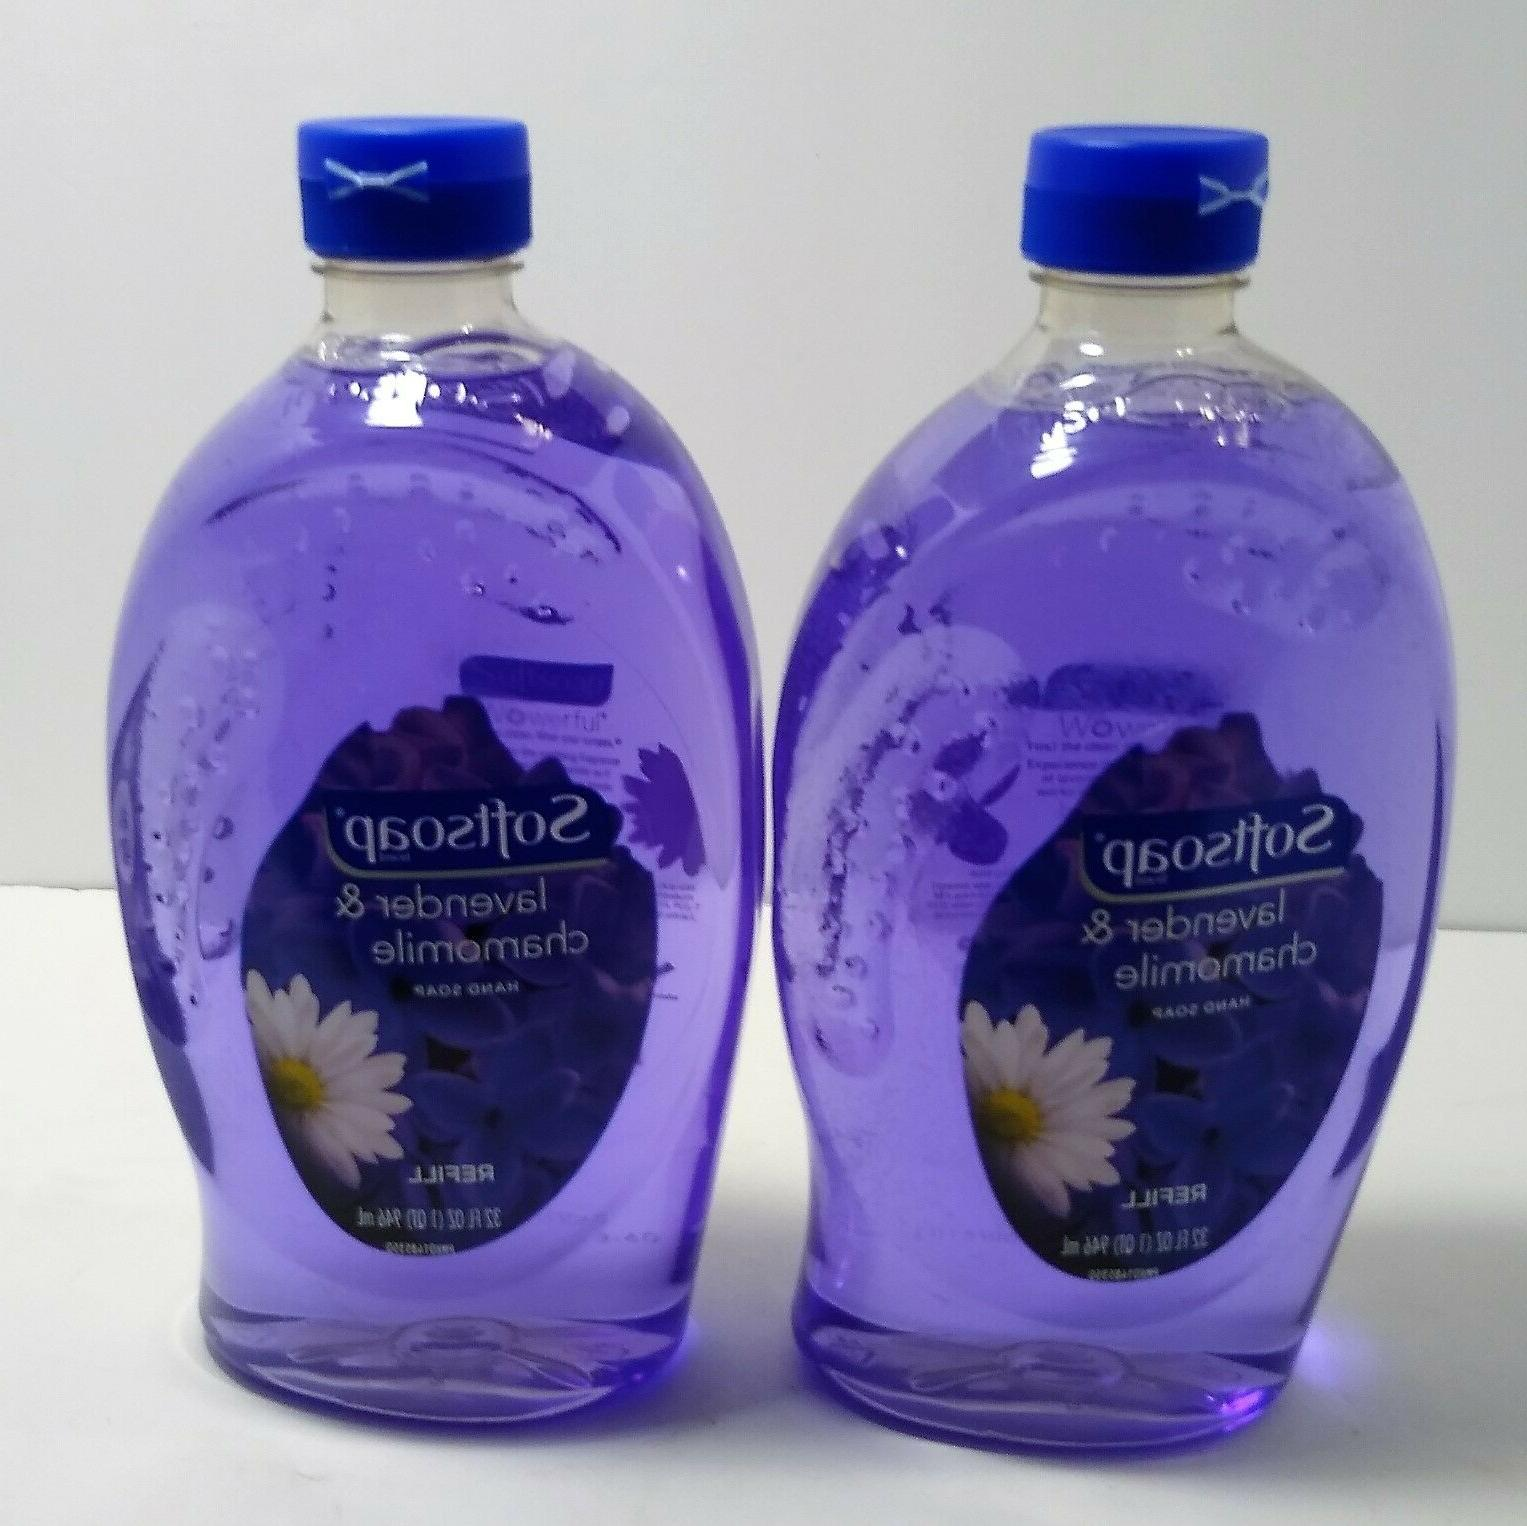 lavender and chamomile liquid hand soap refill